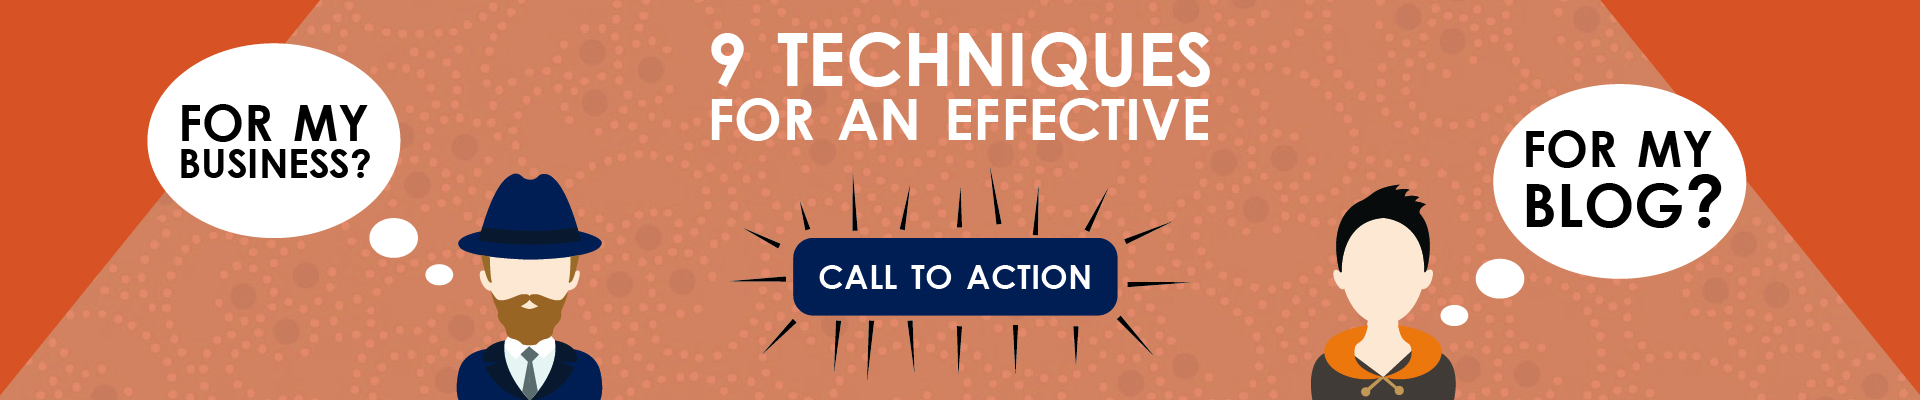 9 techniques for an effective call to action